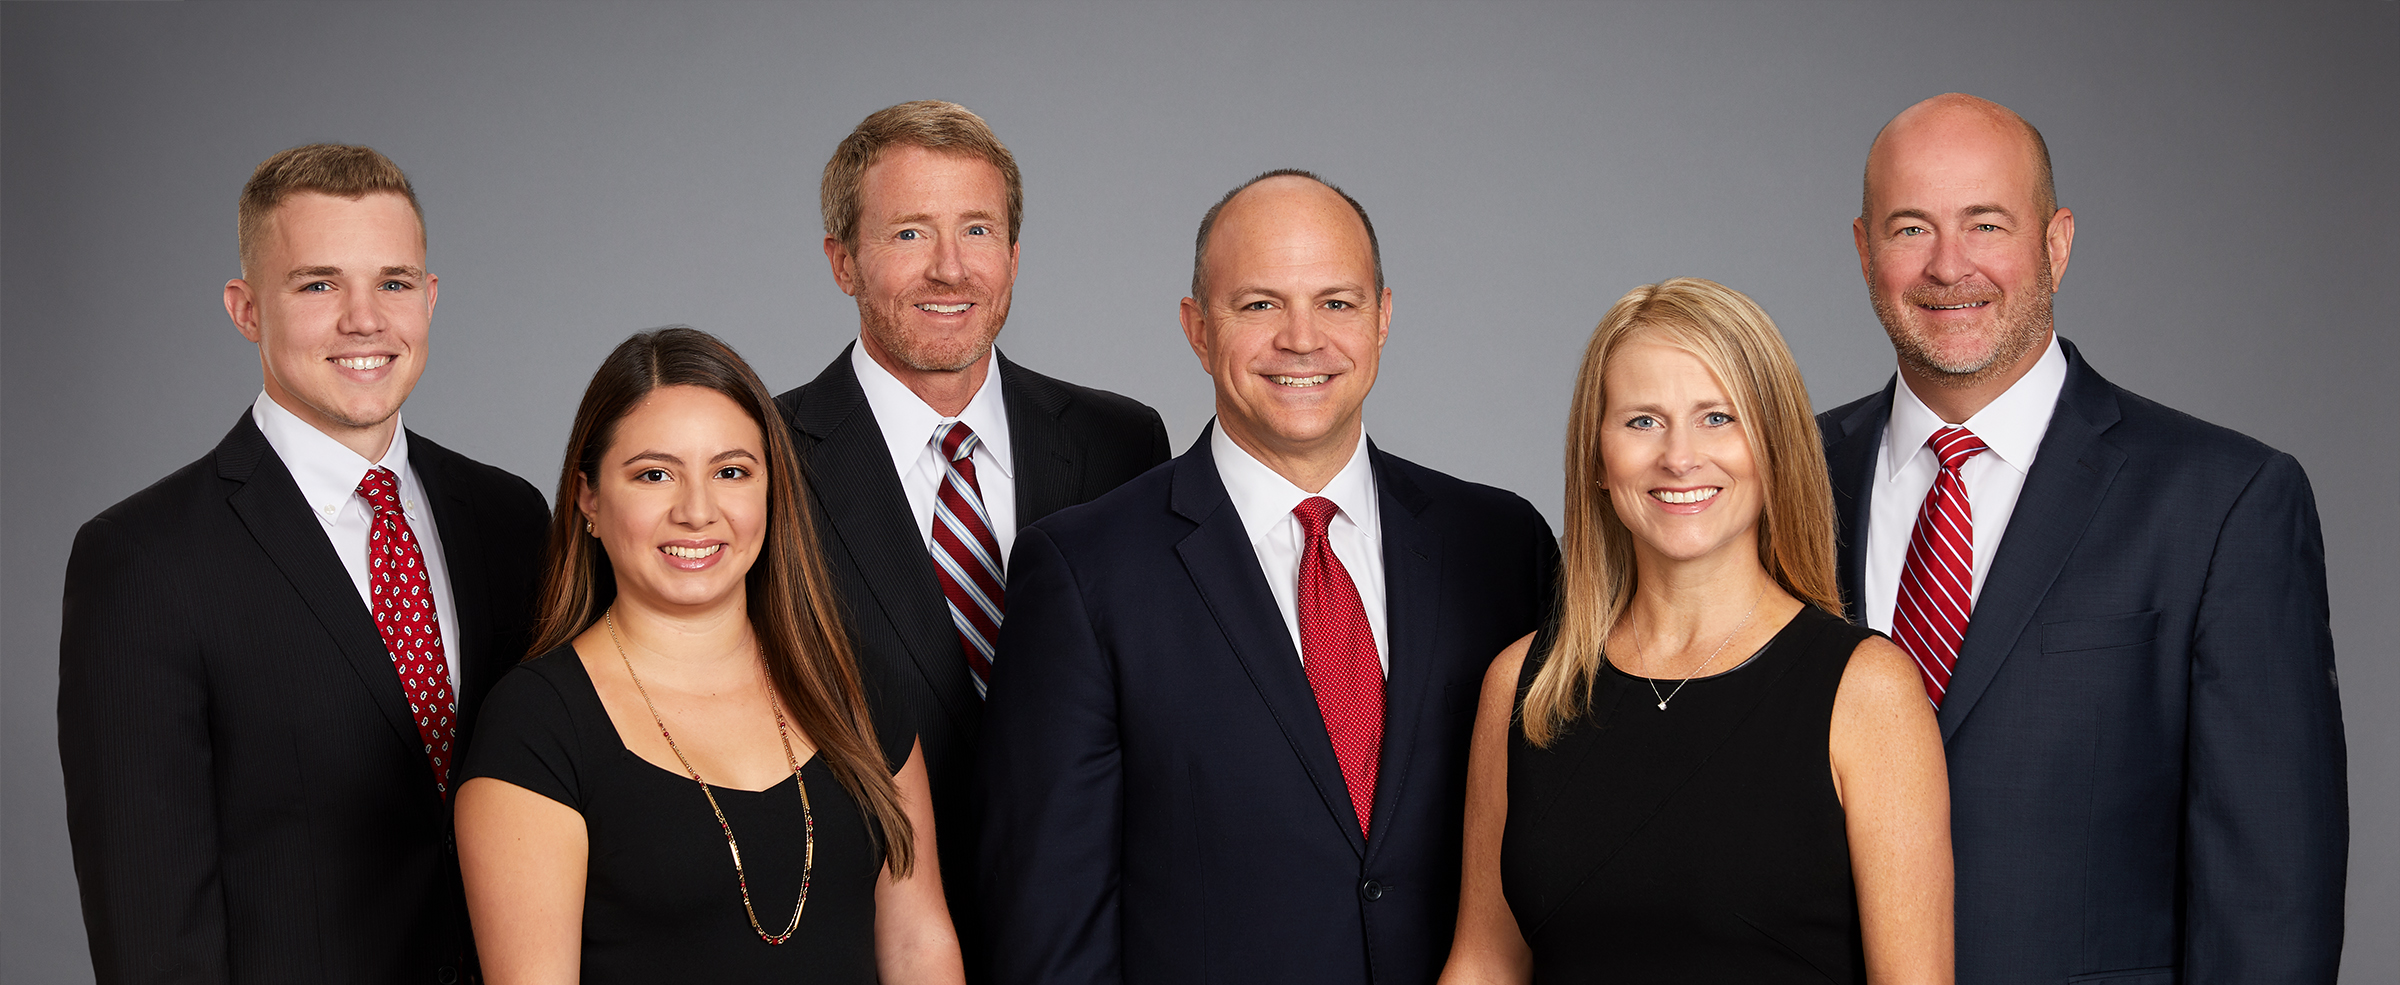 Genesis Wealth Management David J. Moreland, Jason Trent Scoggins, William White, William Herbert White, Elizabeth Diane Scoggins, Susana Romero